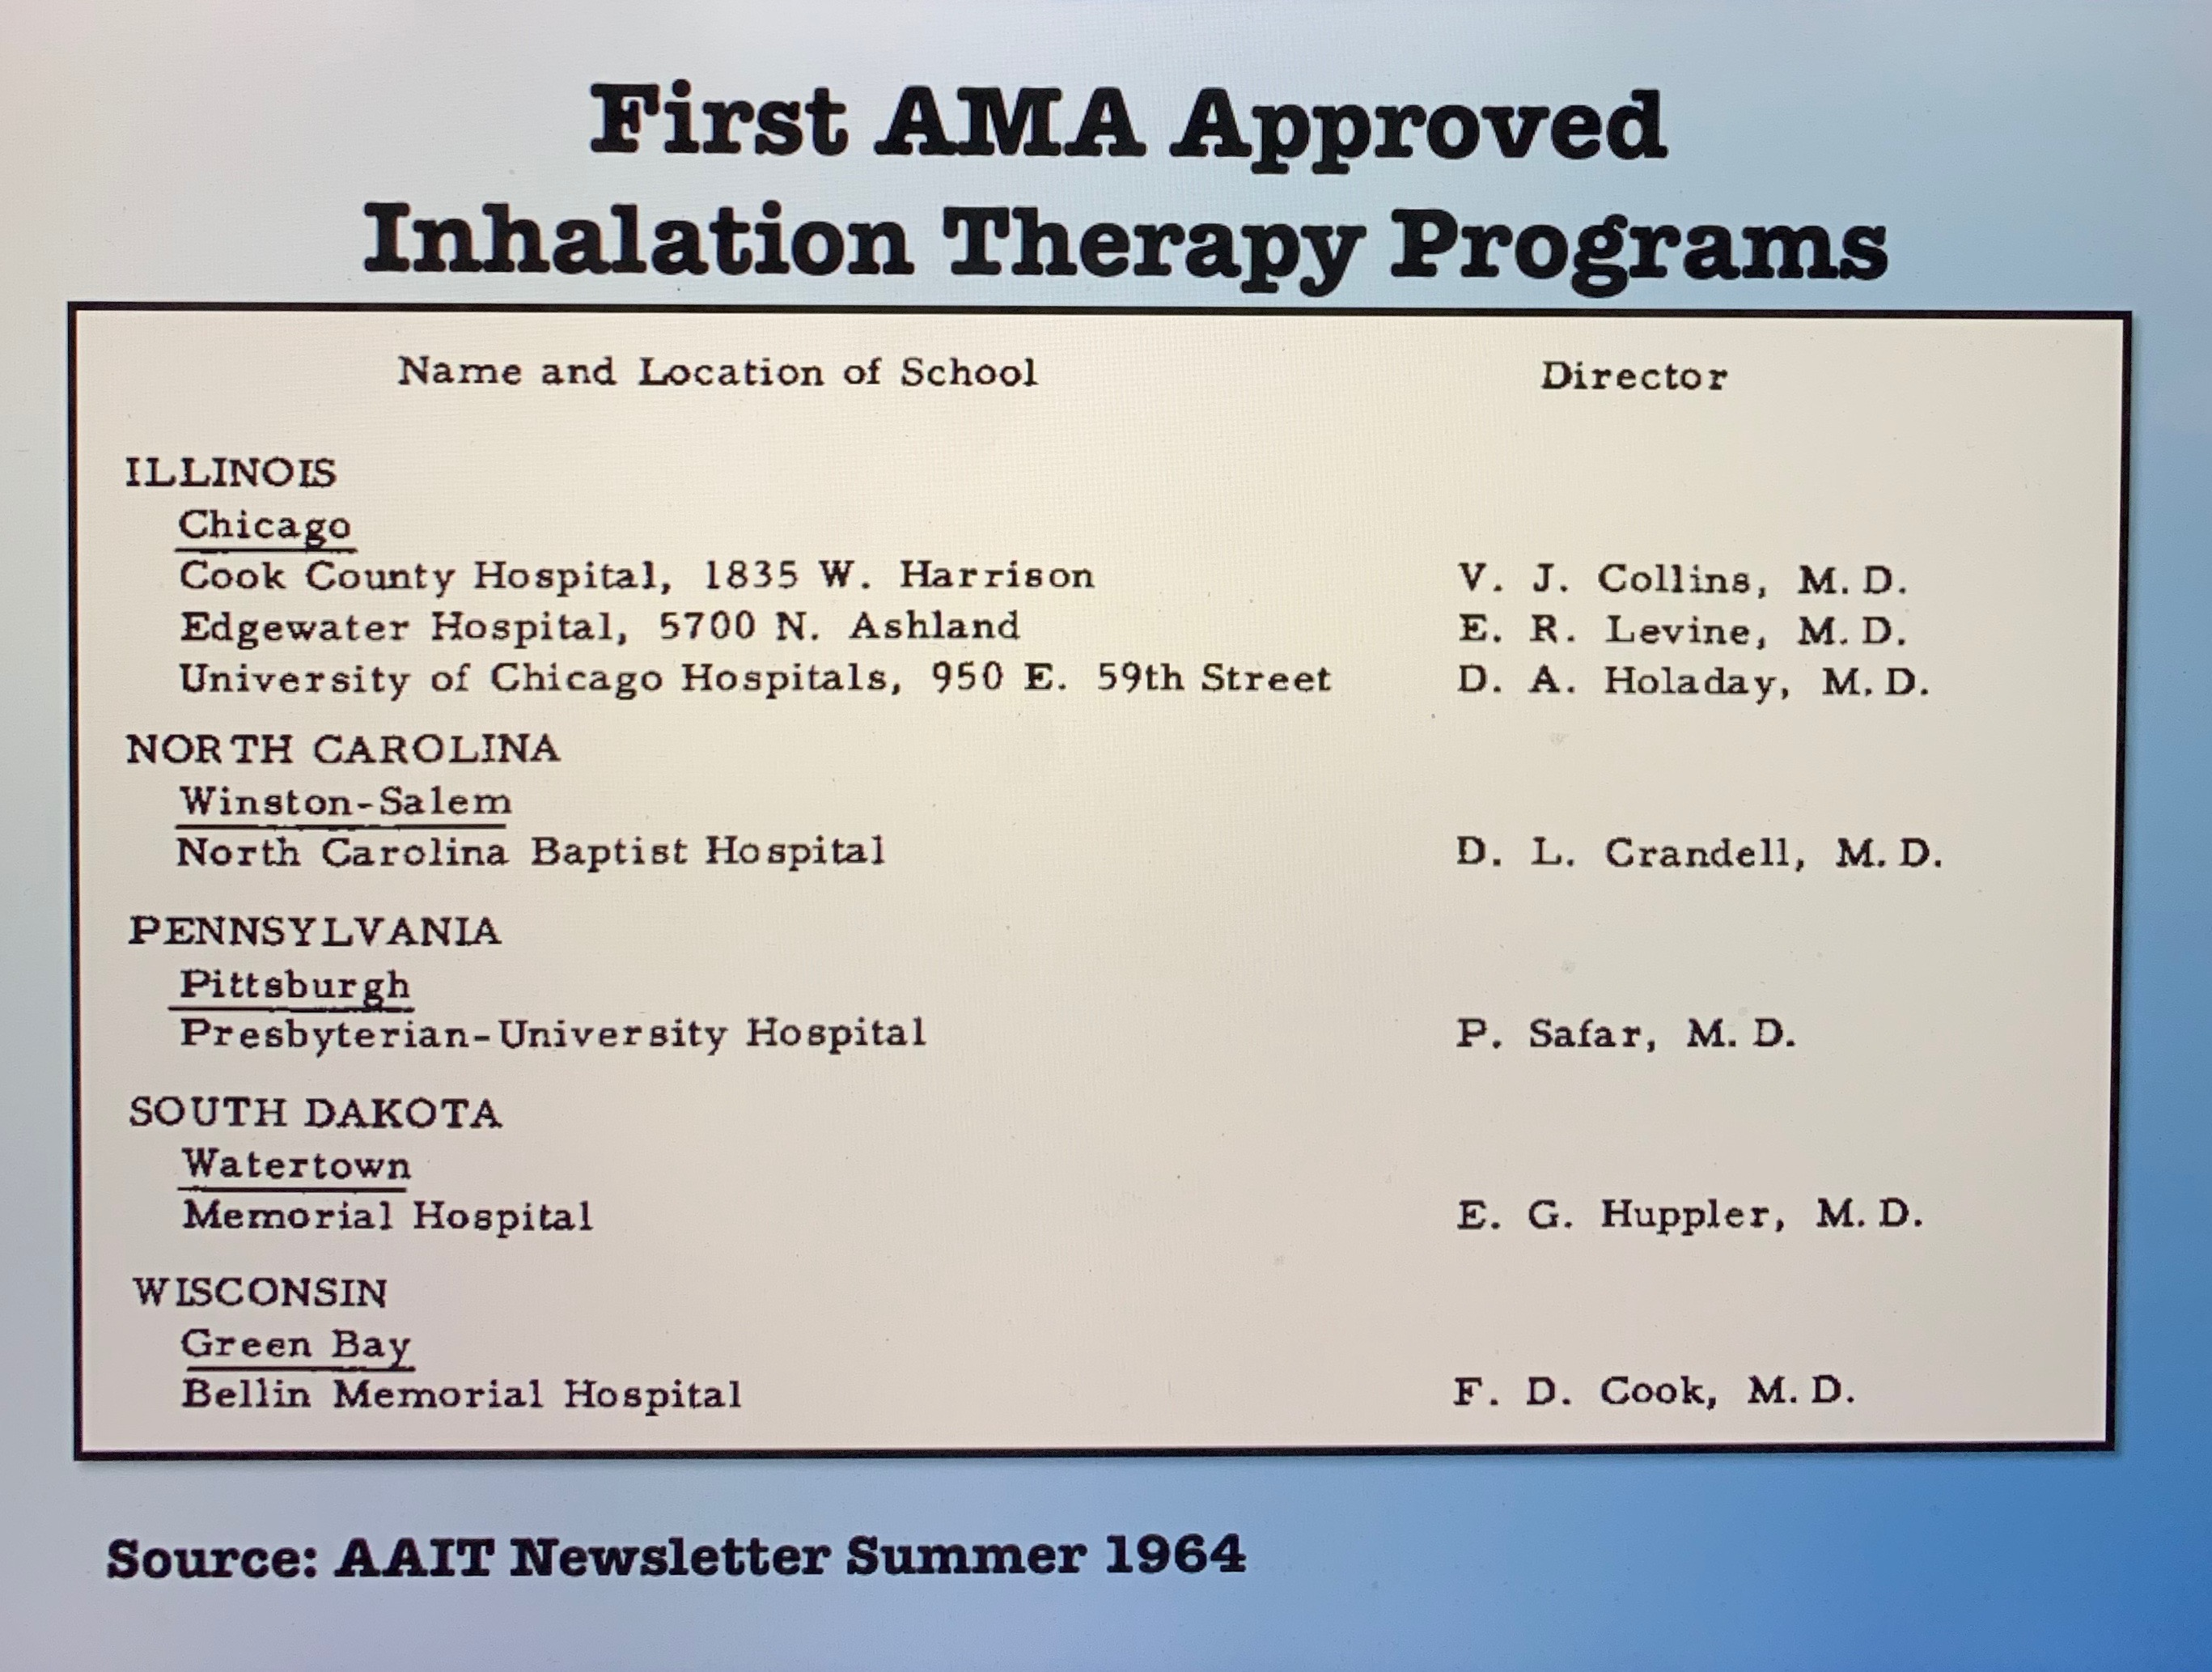 1964 Initial AMA-Approved IT Programs Announced